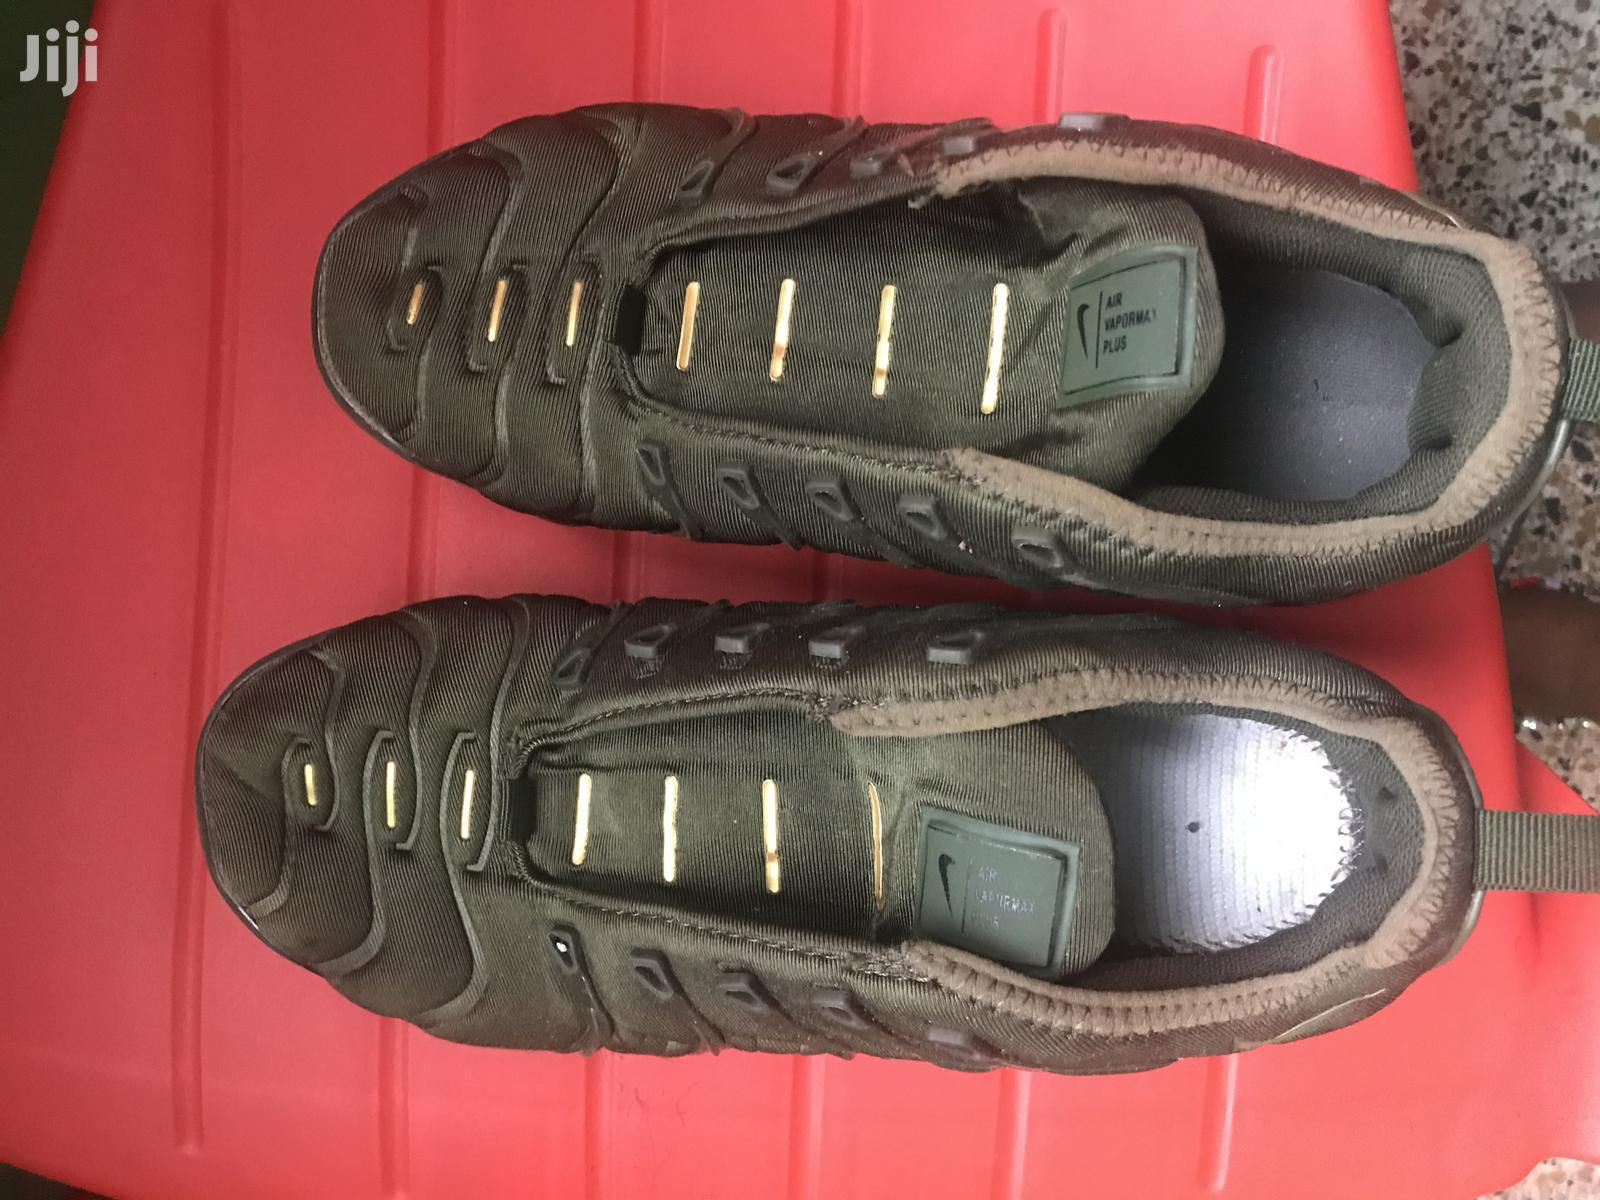 Original Nike Vapour Max Air | Shoes for sale in Adabraka, Greater Accra, Ghana